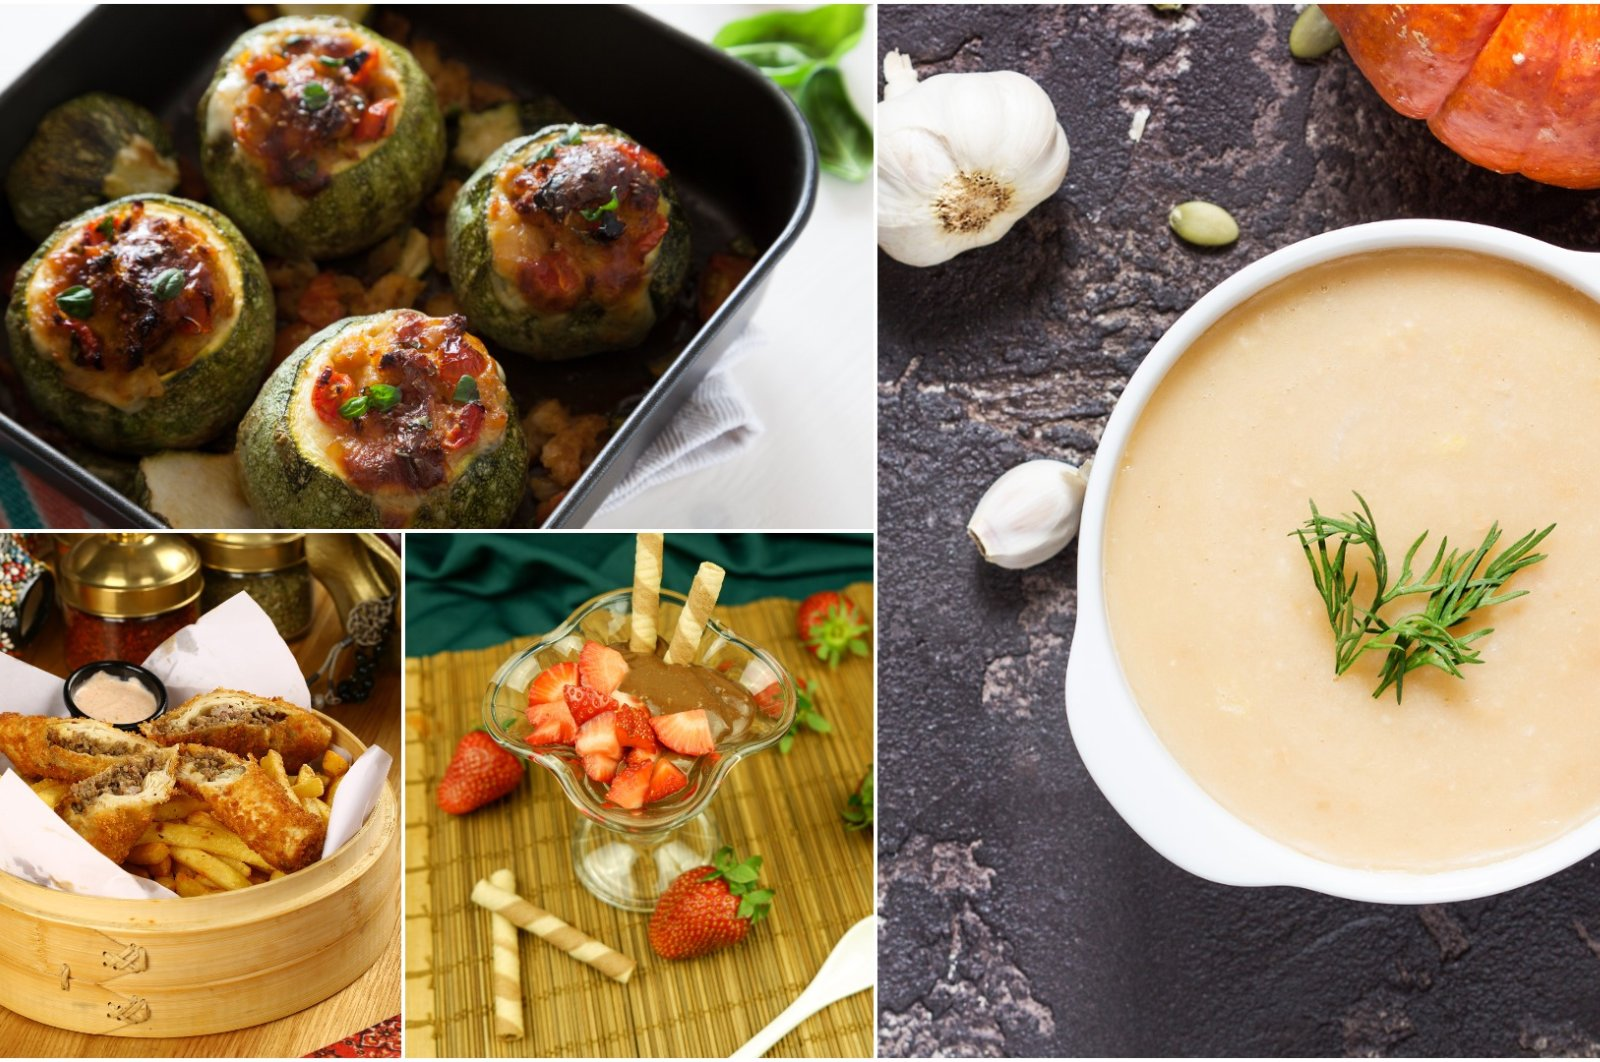 If you're looking to break your fast with some delicious lip-smacking dishes, here's a full menu.